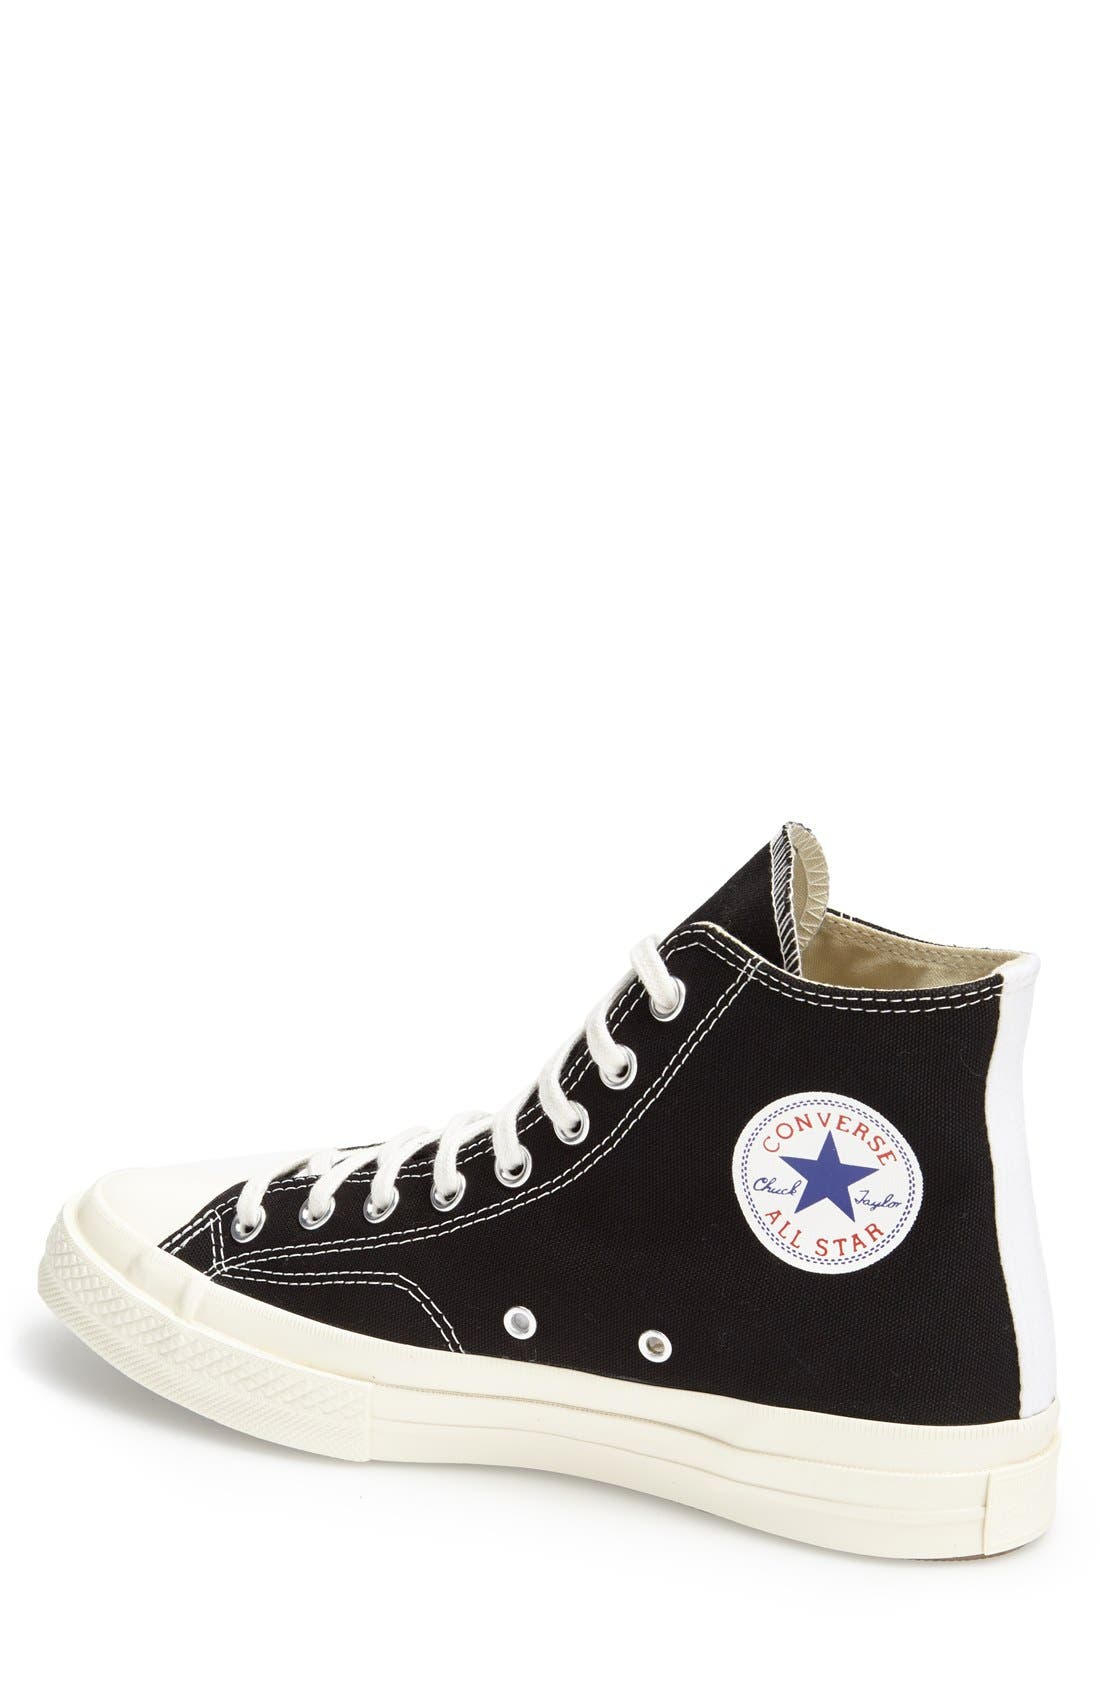 COMME DES GARÇONS, PLAY x Converse Chuck Taylor<sup>®</sup> Hidden Heart High Top Sneaker, Alternate thumbnail 4, color, BLACK CANVAS